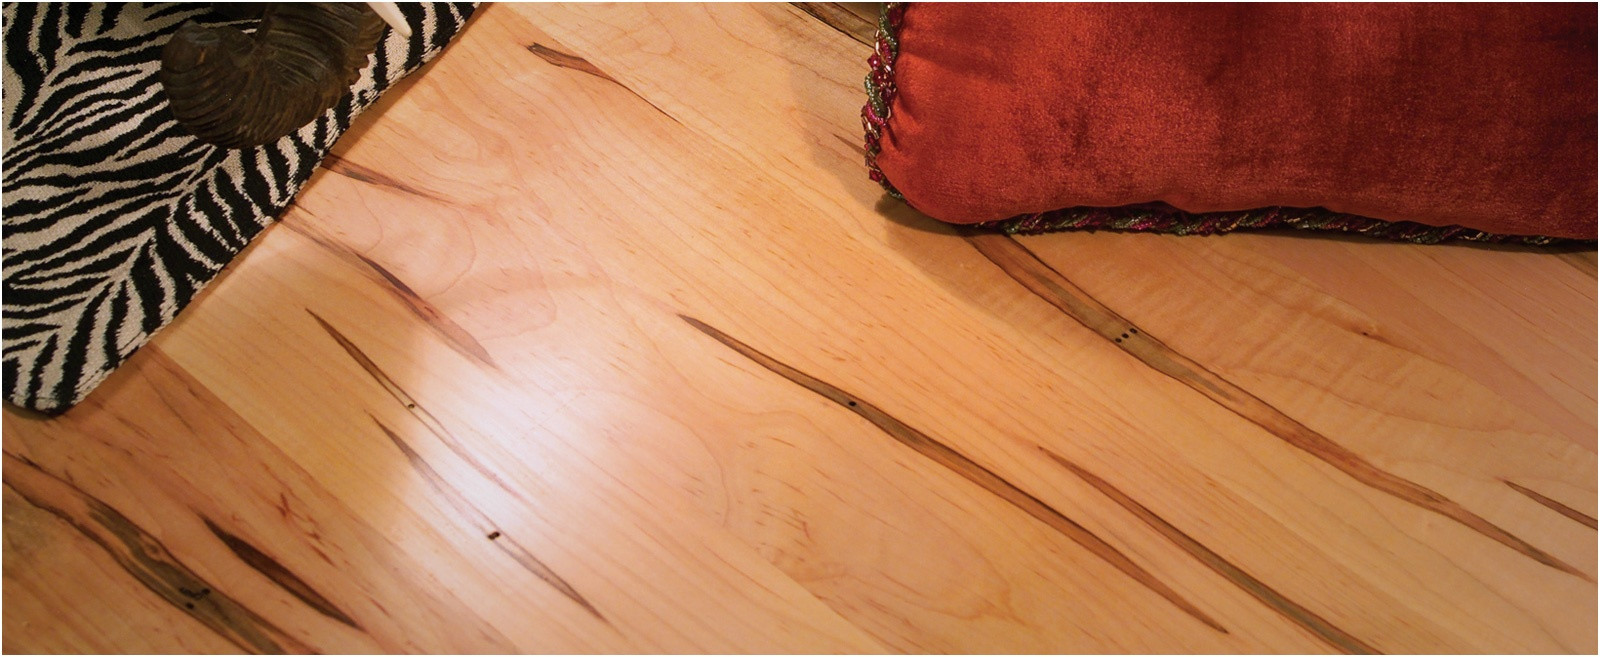 unfinished hardwood flooring canada of unfinished hardwood flooring for sale flooring design regarding unfinished hardwood flooring for sale new hardwood floor design hardwood installation parquet wood flooring of unfinished